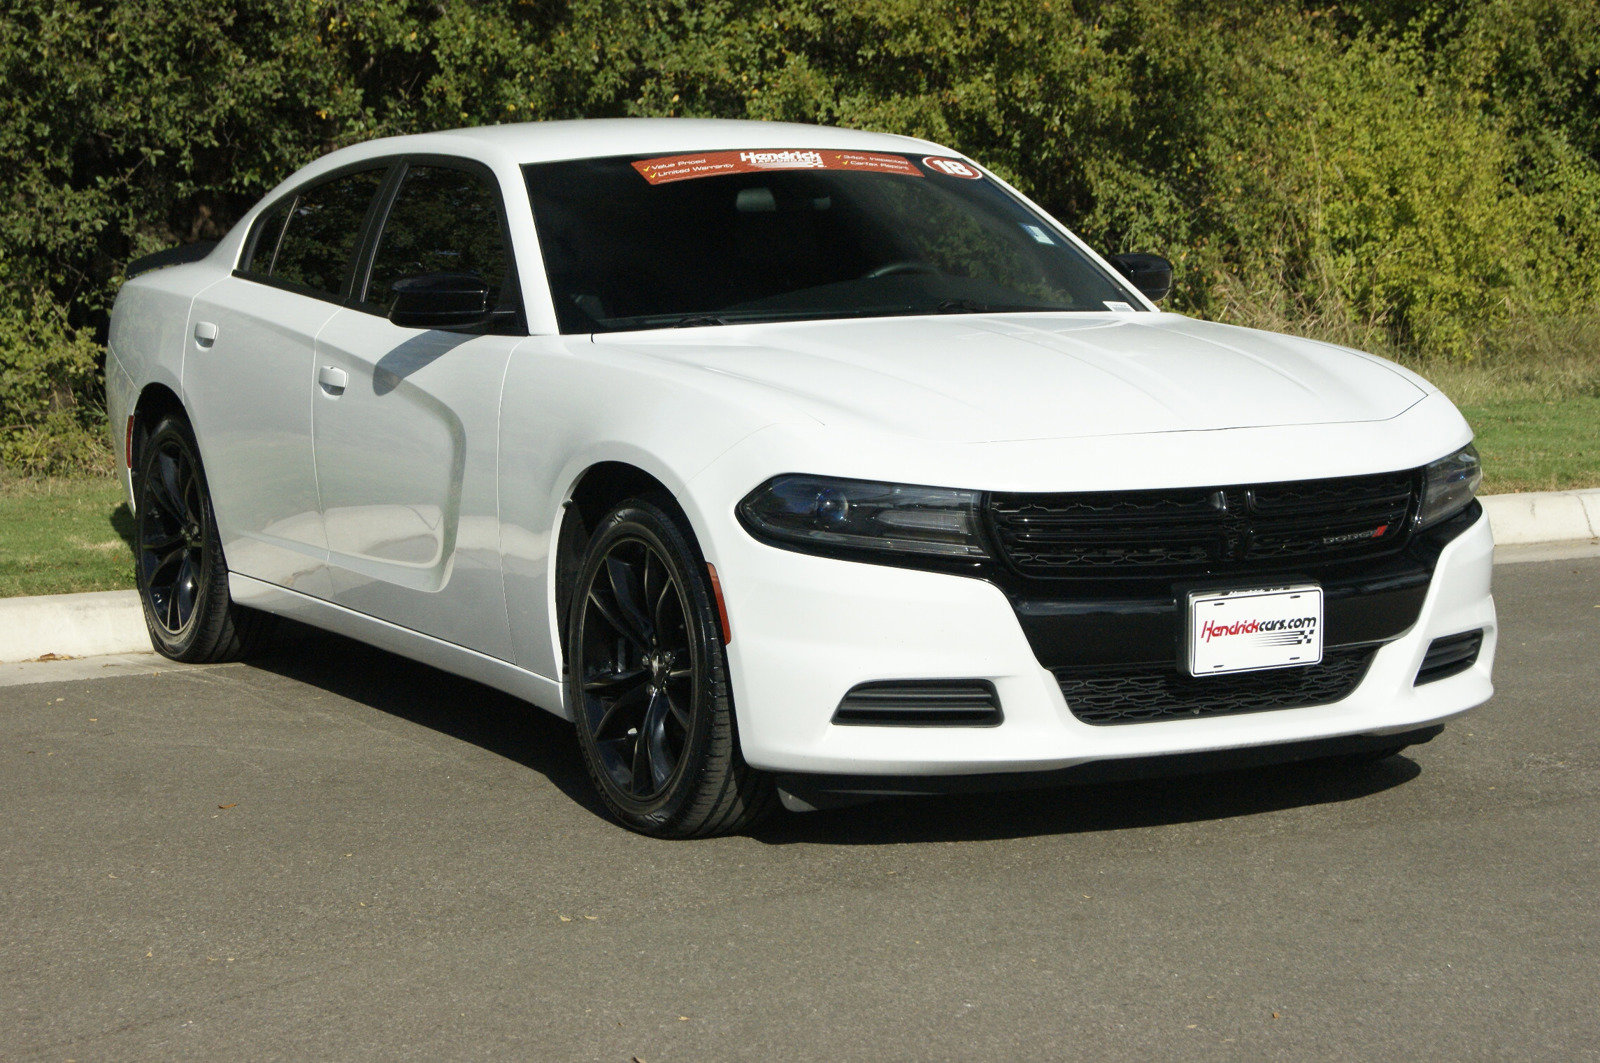 Pre Owned 2018 Dodge Charger Sxt Sedan In Duluth L19755a Rick Hendrick Chevrolet Duluth